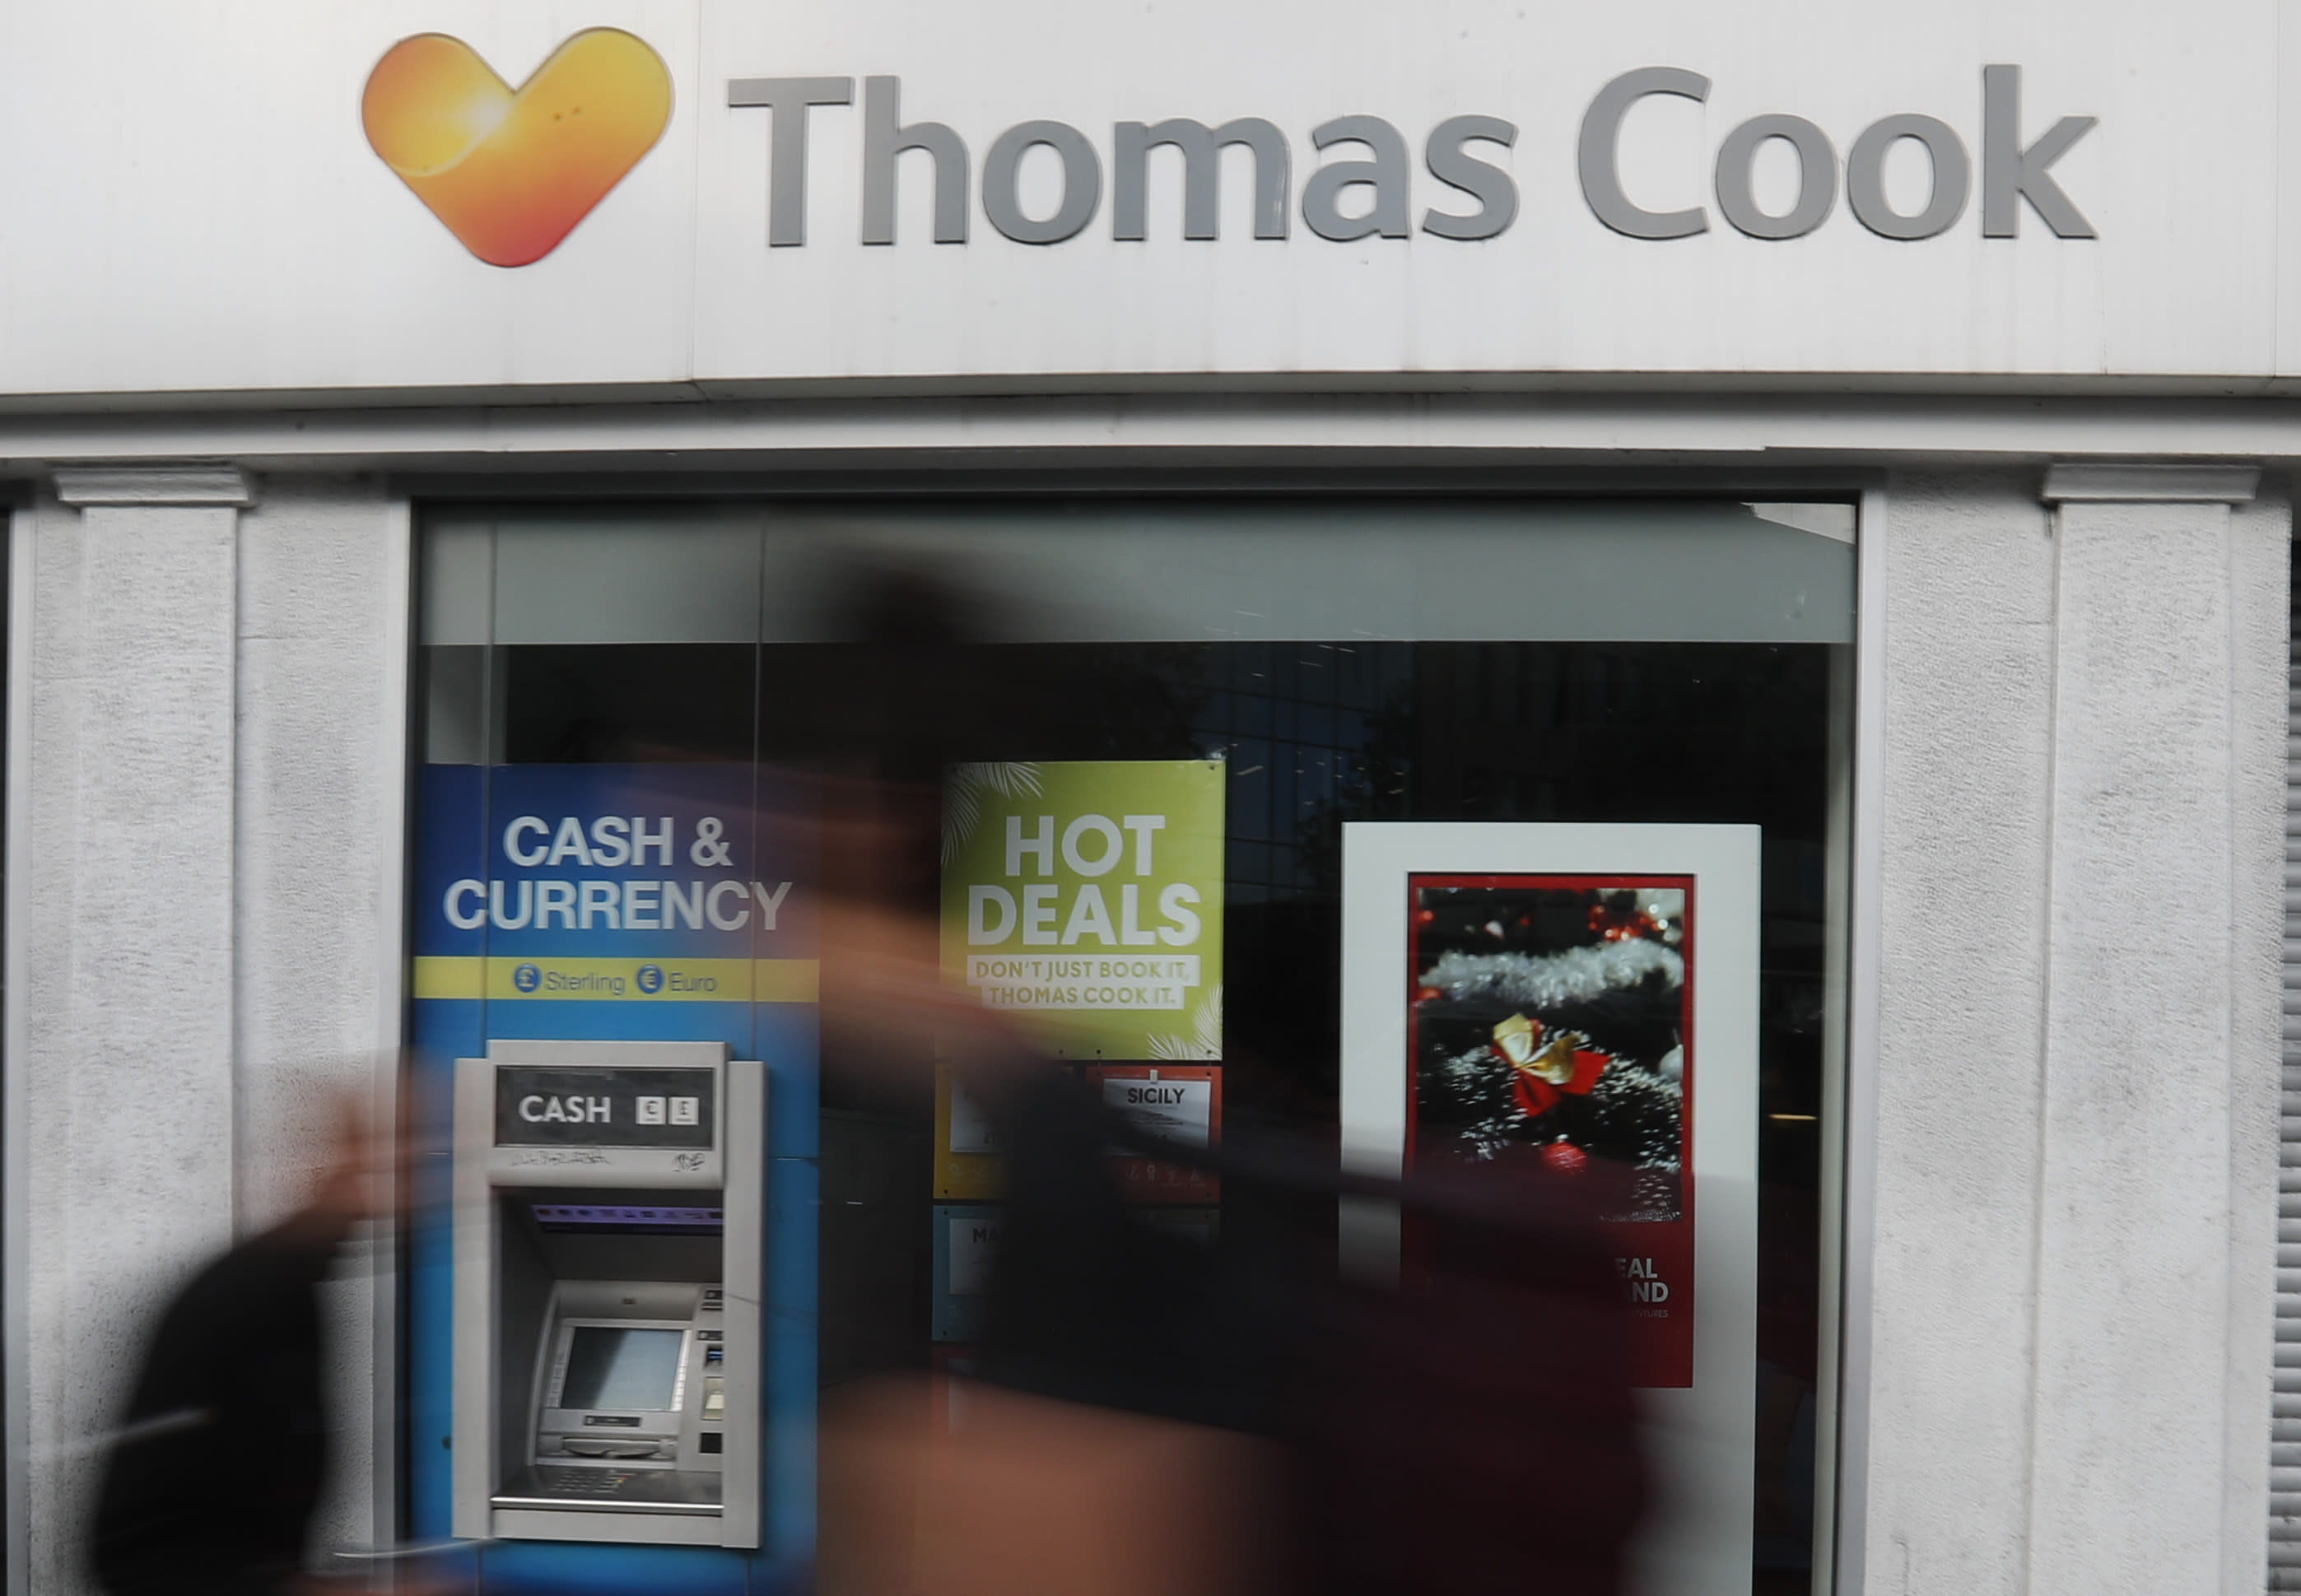 Hays Travel paid just £11,000 for each Thomas Cook travel shop